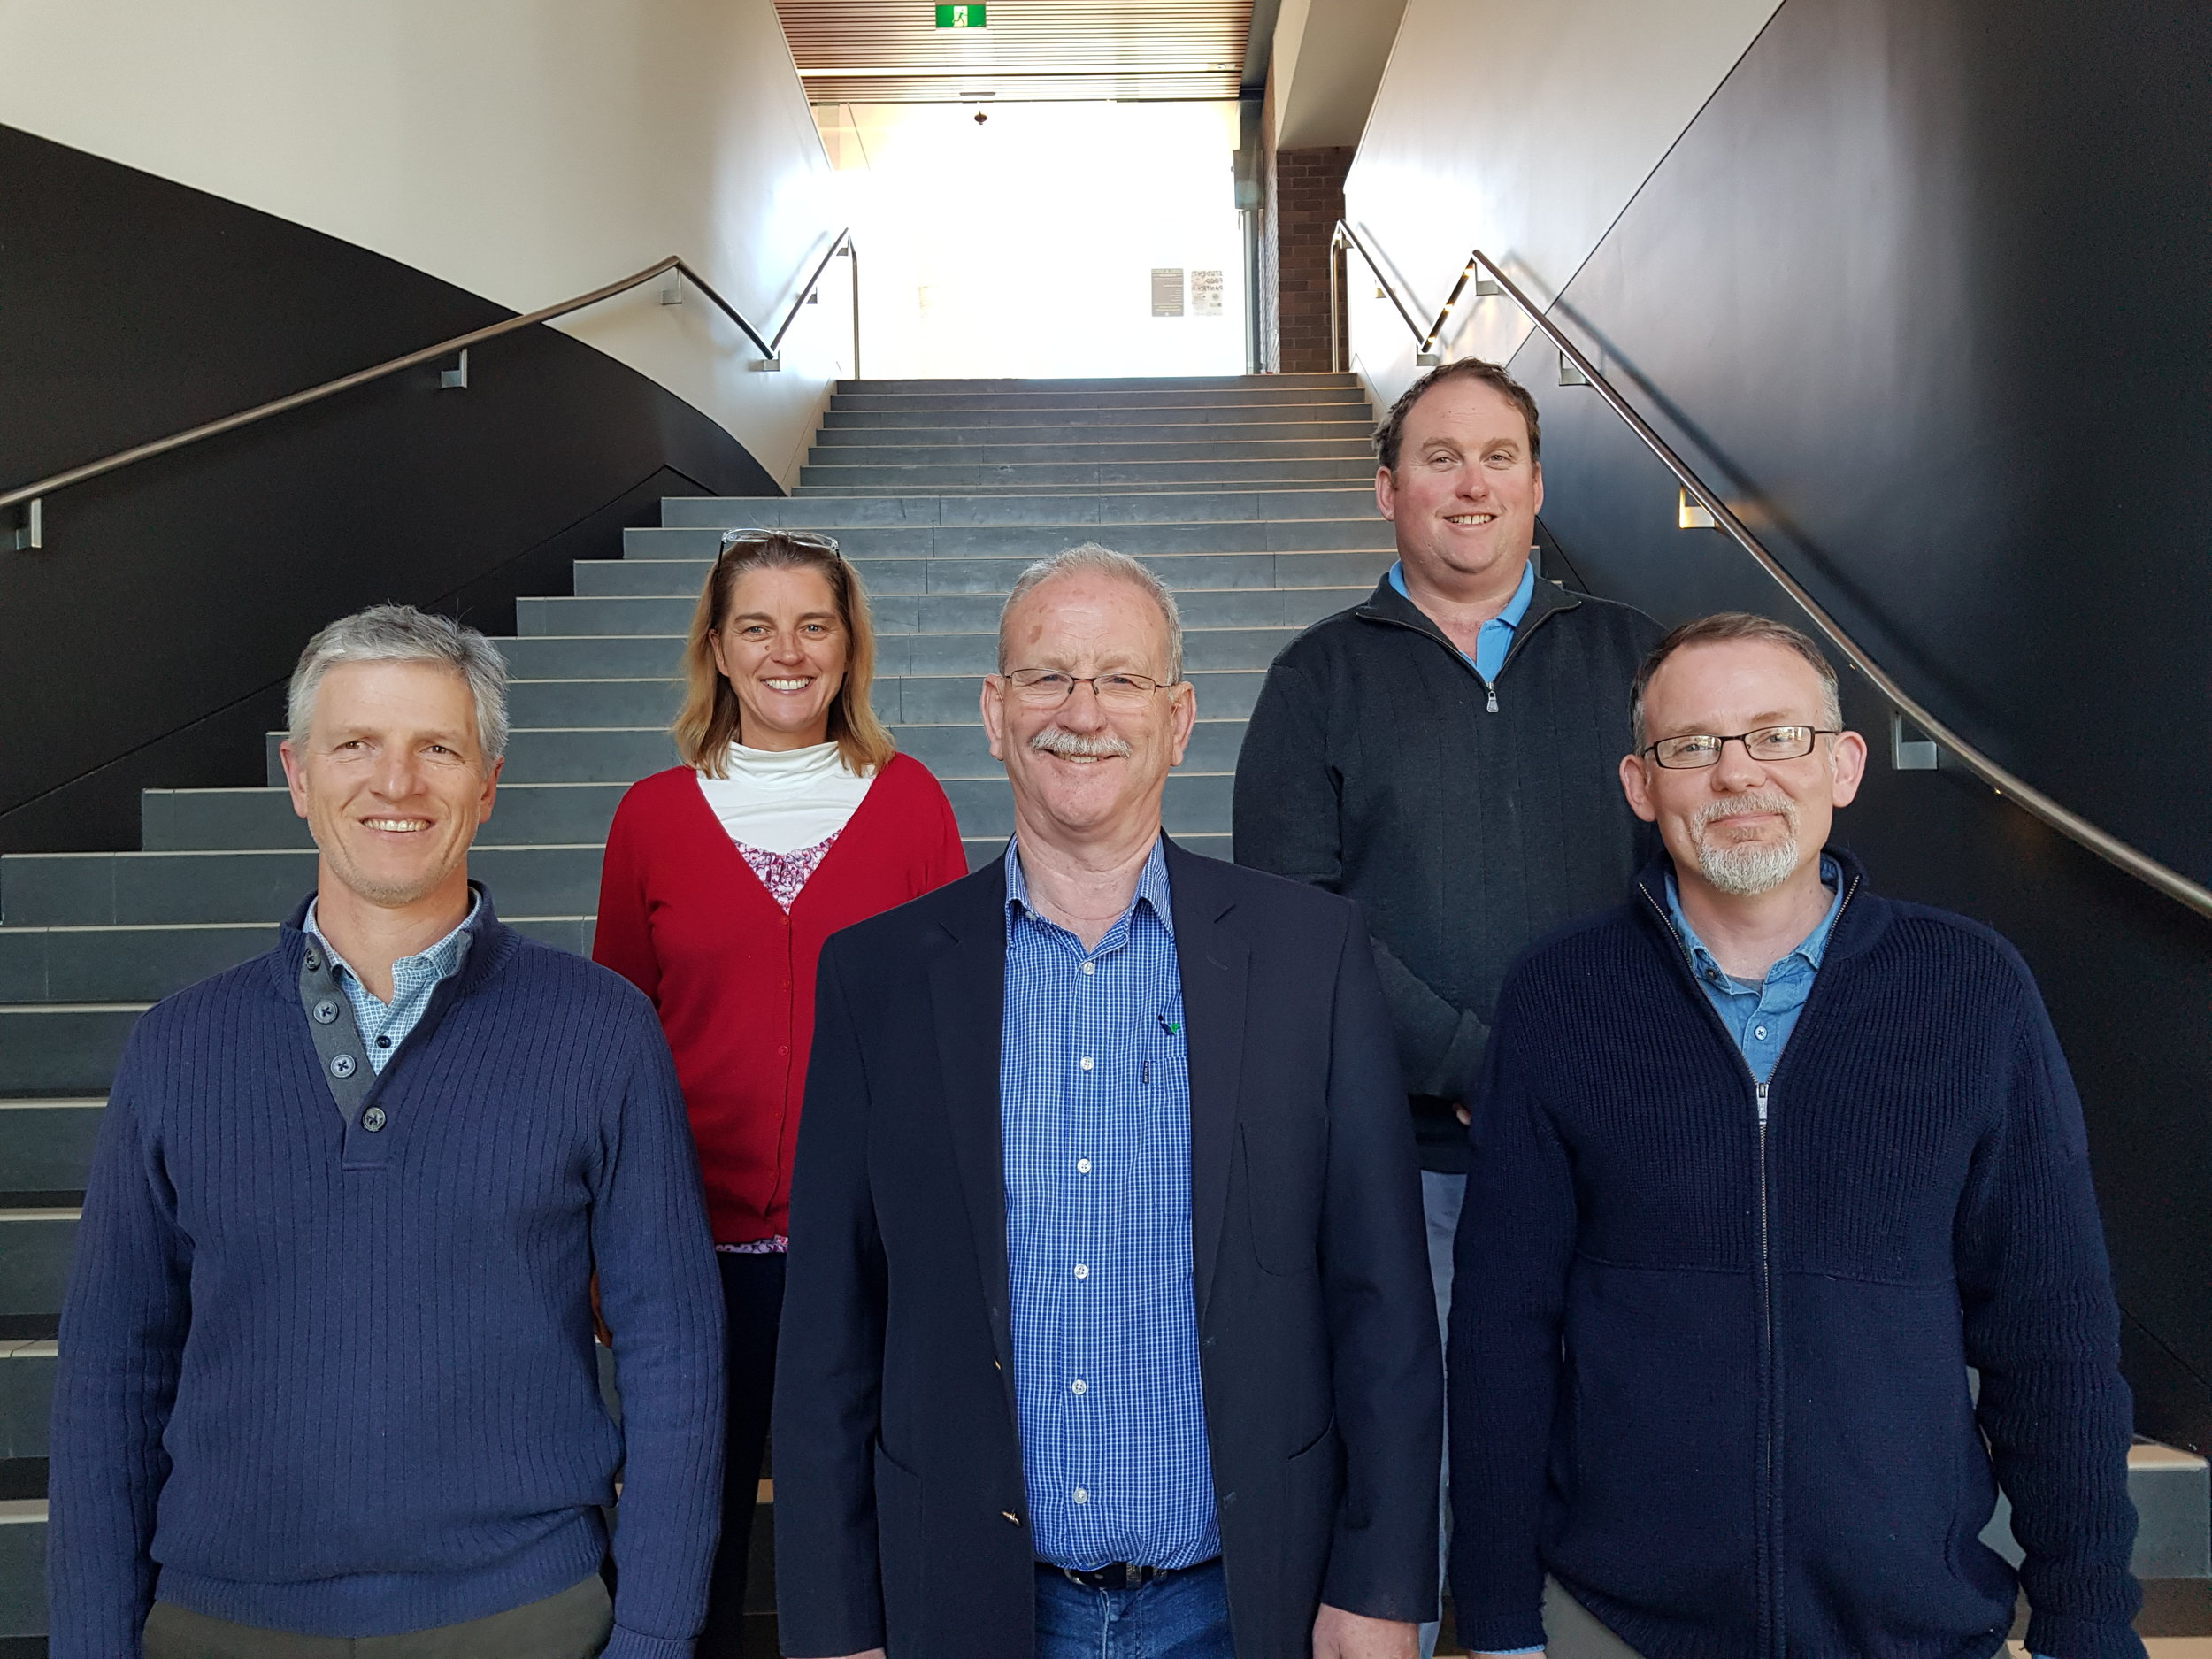 Invetus Leaders (L-R): Graeme Hollis (Finance & Admin), Elizabeth Evans (Business Development), Maurice Webster (Managing Director), Henry Chambers (Research Support), Mike Gieseg (Research).